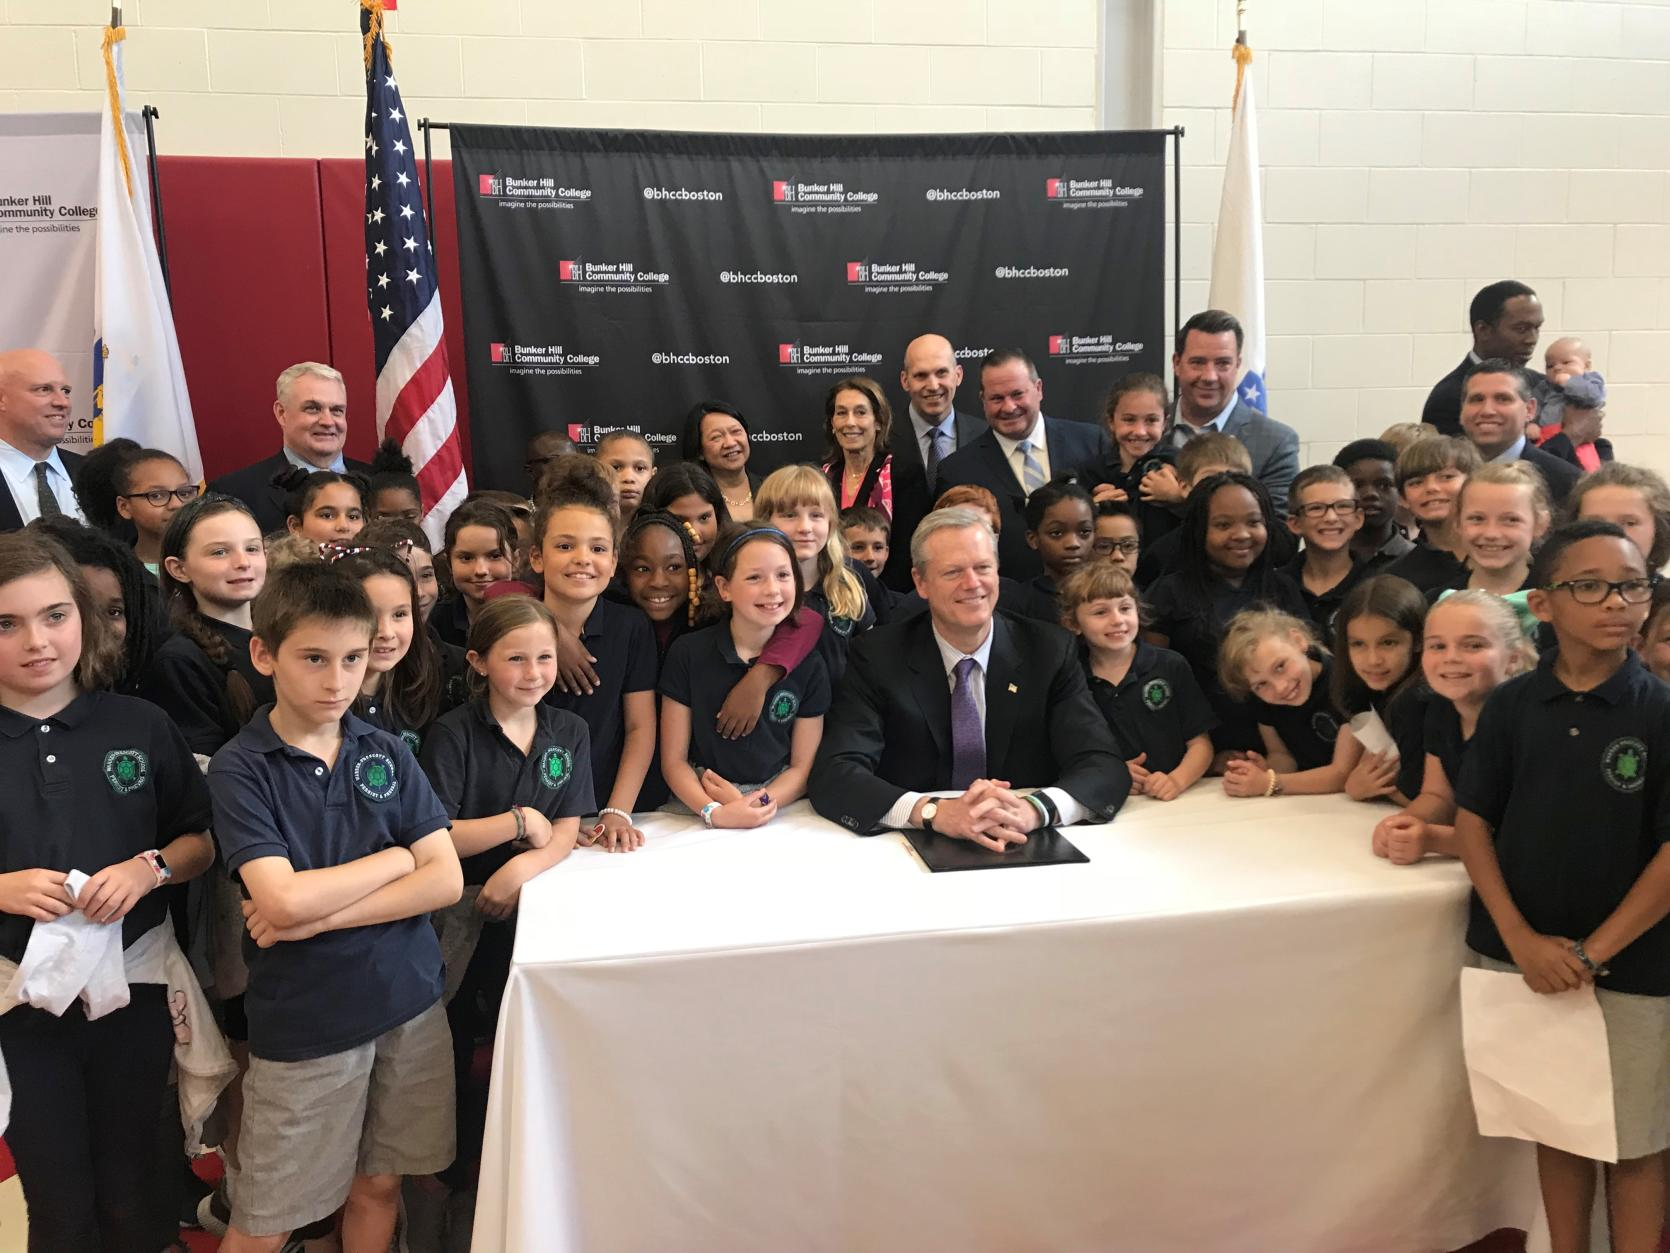 •	Gov. Charlie Baker is surrounded by third graders from Warren Prescott School in Charlestown as he announces $20 million in life science funding for 23 Massachusetts companies. Baker was also joined at Bunker Hill Community College by state officials and representatives of life science companies.